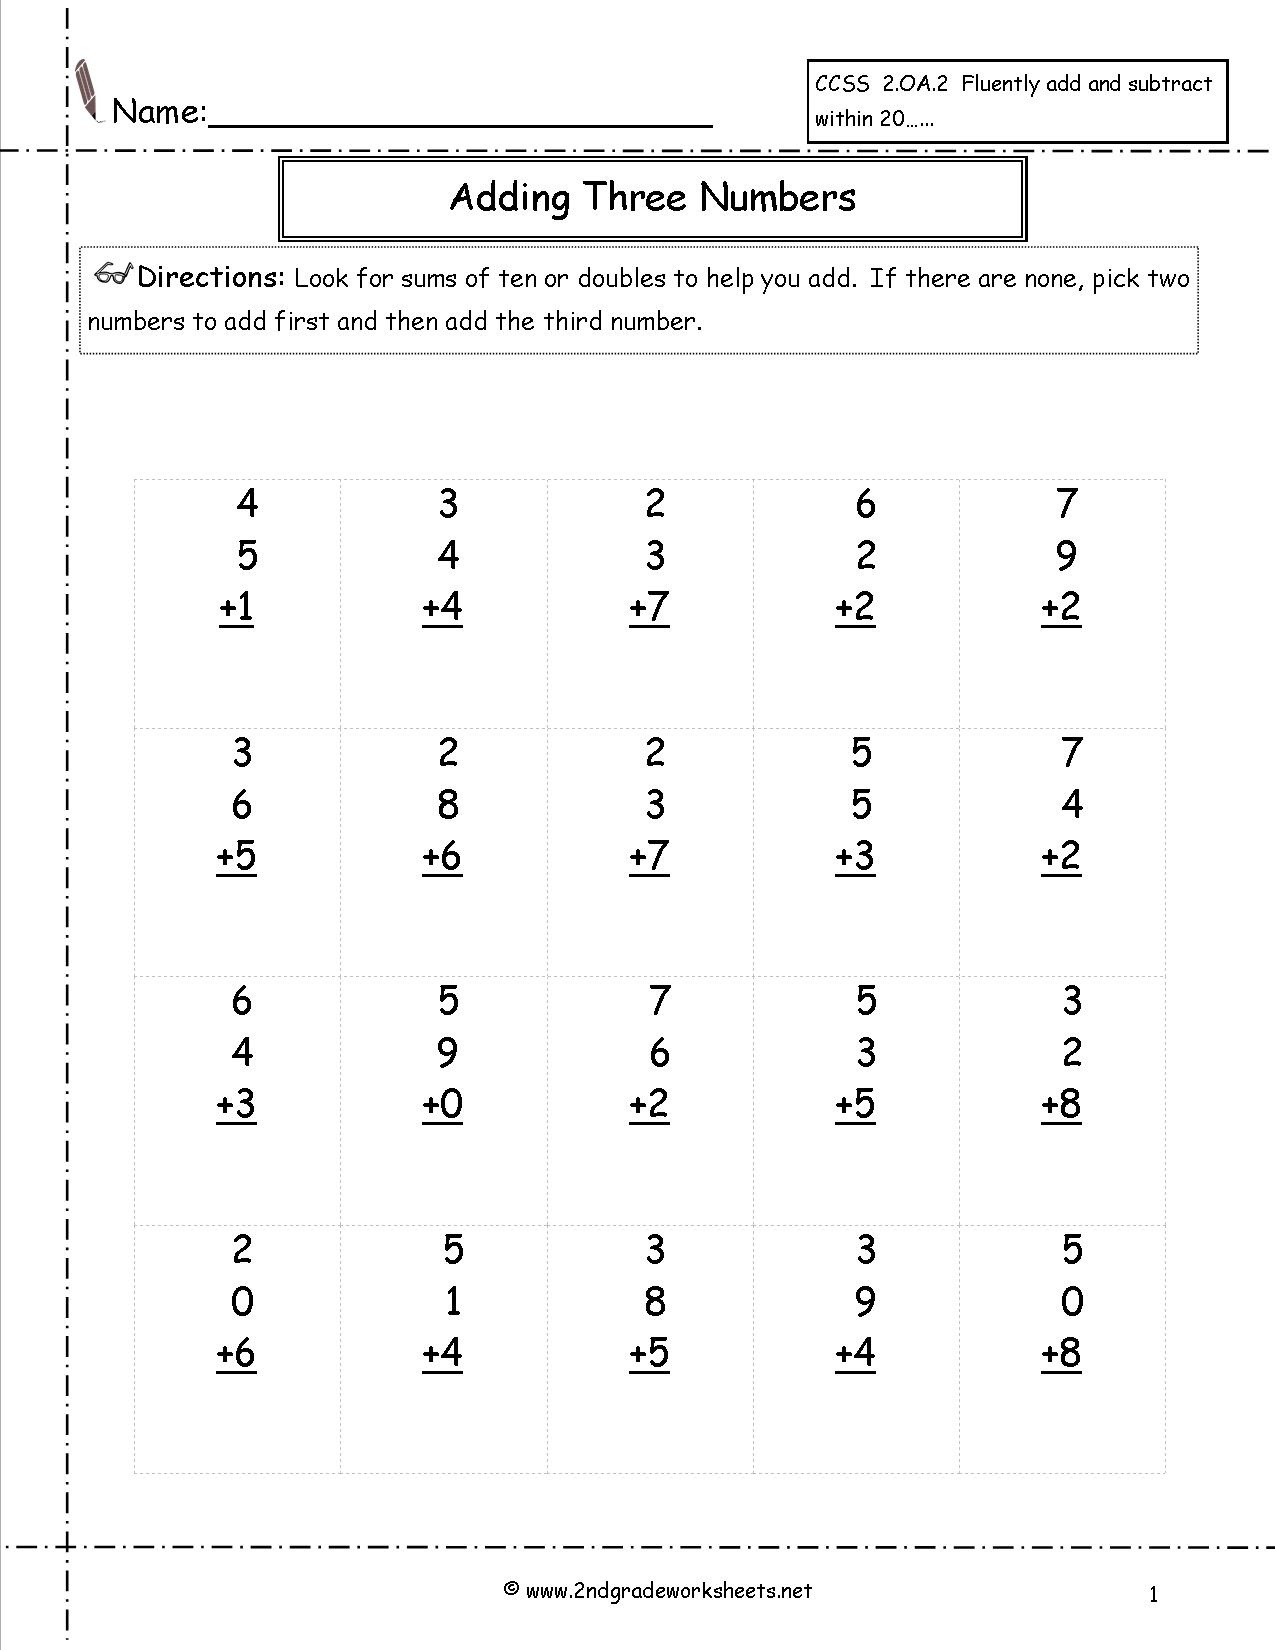 Free Math Worksheets And Printouts - Free Math Printables For 2Nd Grade